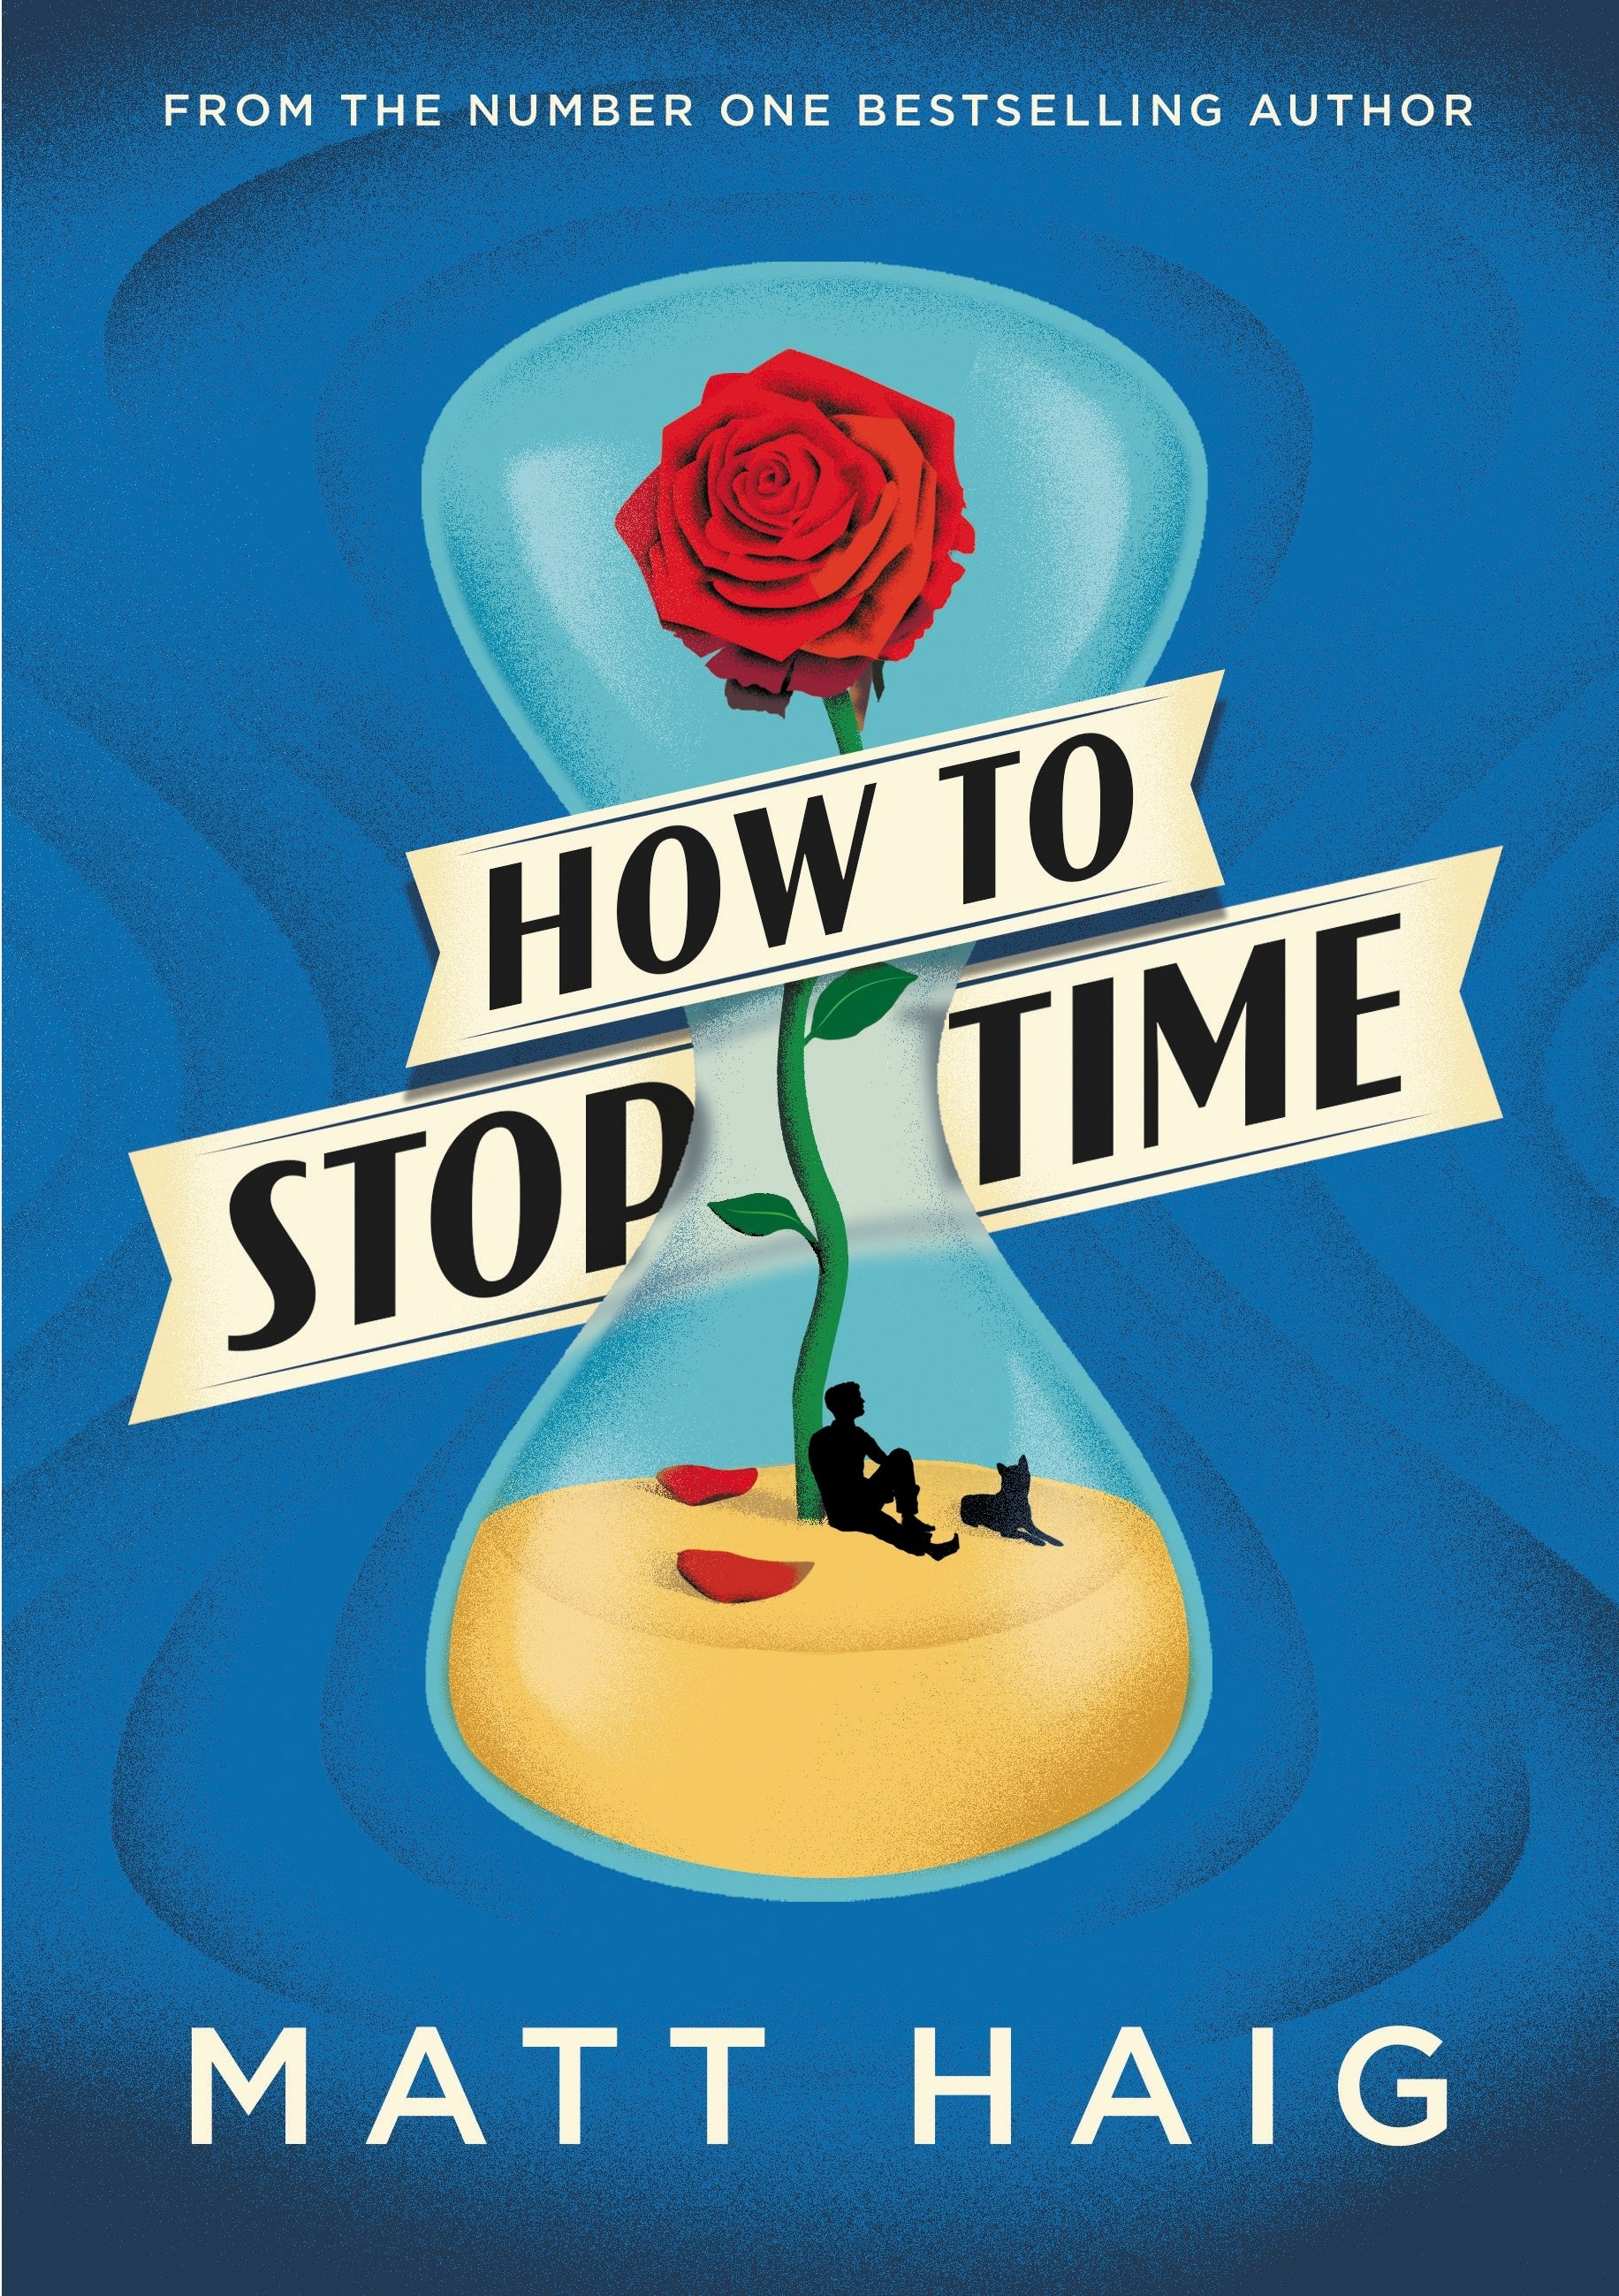 book reviews - how to stop time